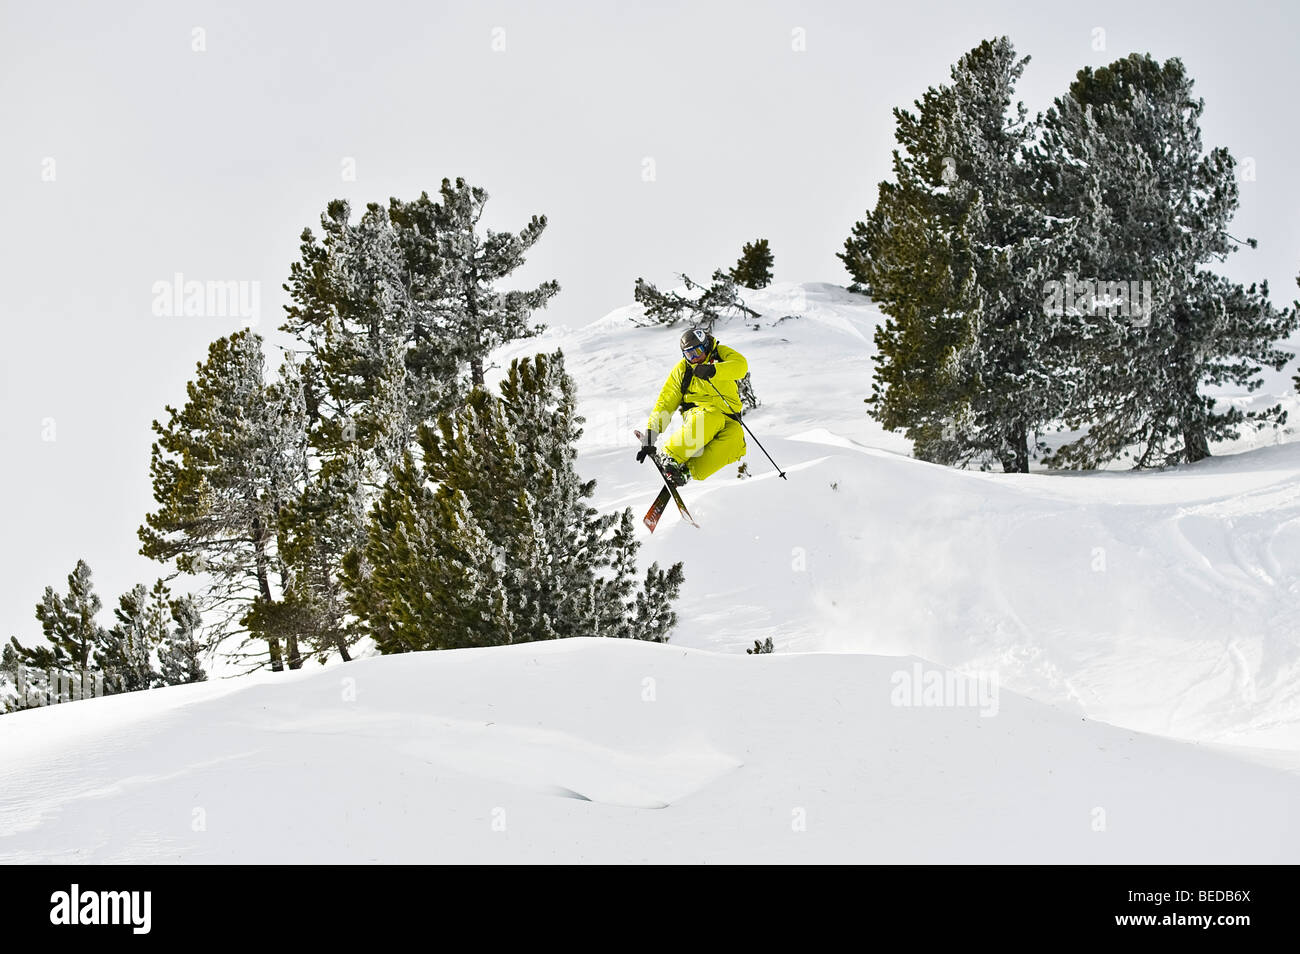 Deep snow skier, freerider, jumping, tail grab, over a snowdrift - Stock Image